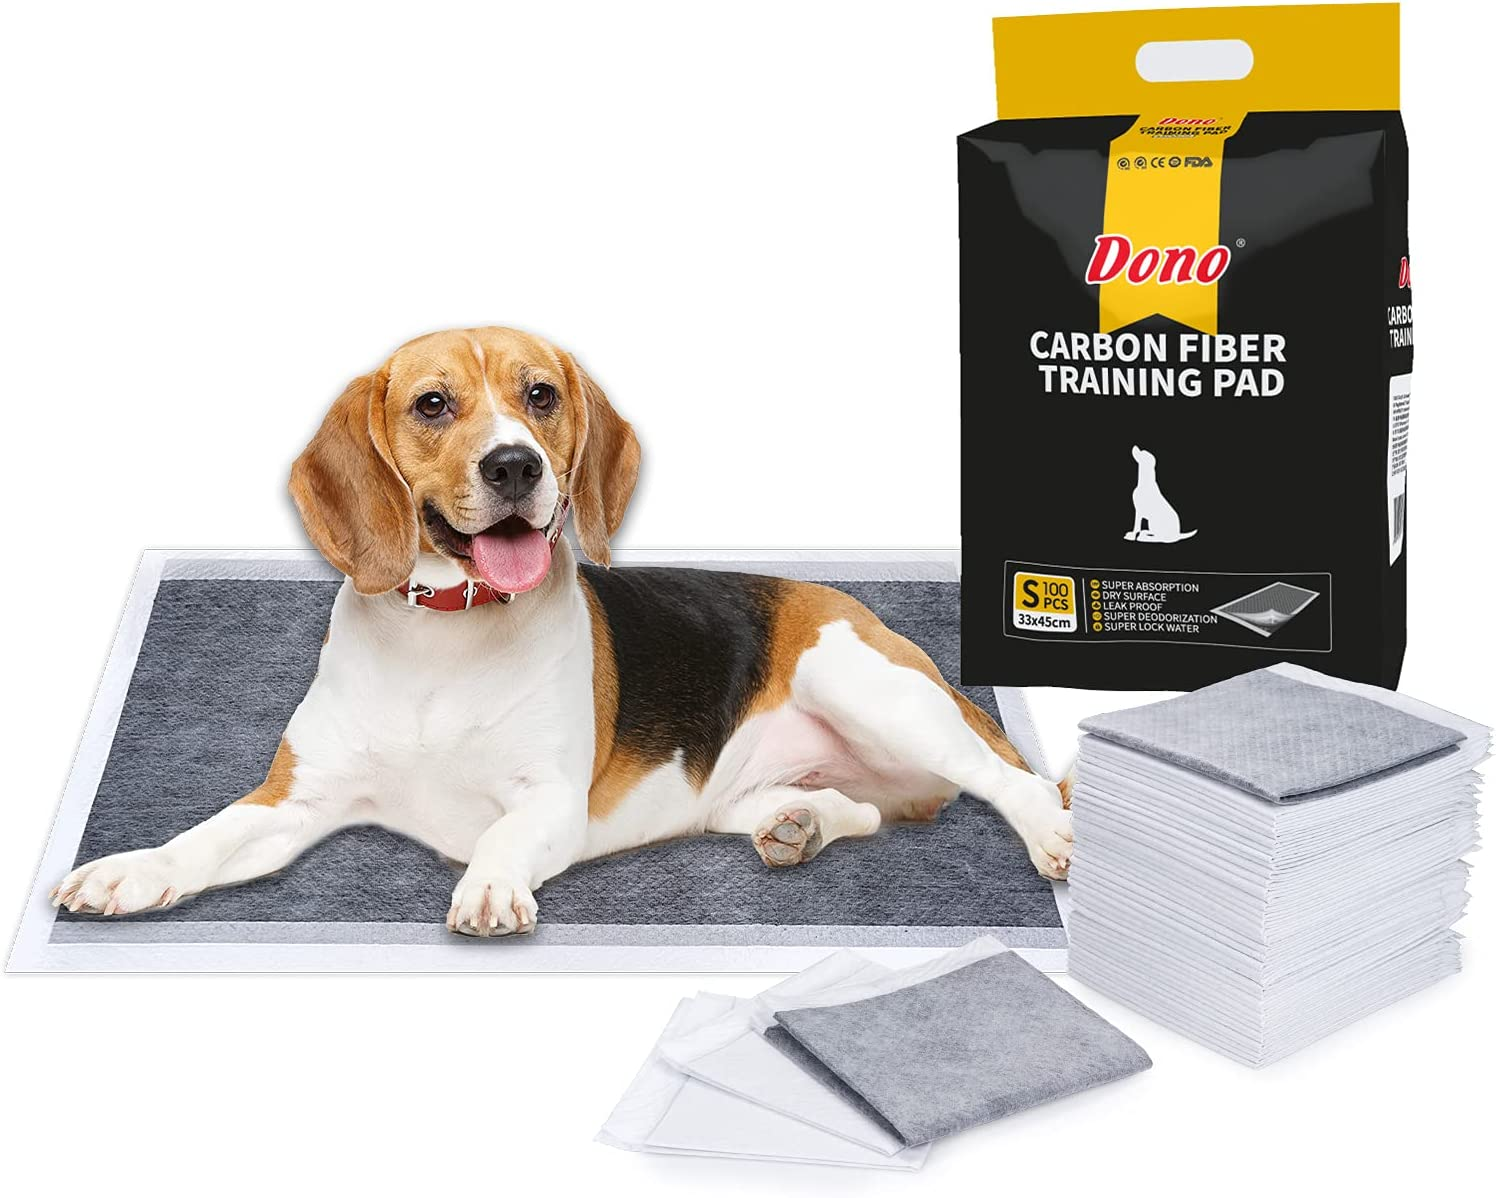 Dono Pet Training Puppy Pads - 100 Carbon Puppy Pee Wee Toilet Trainer Pads Super Absorbent Deodorizing Heavy Duty Dog Pet Pads S : Amazon.co.uk: Pet Supplies